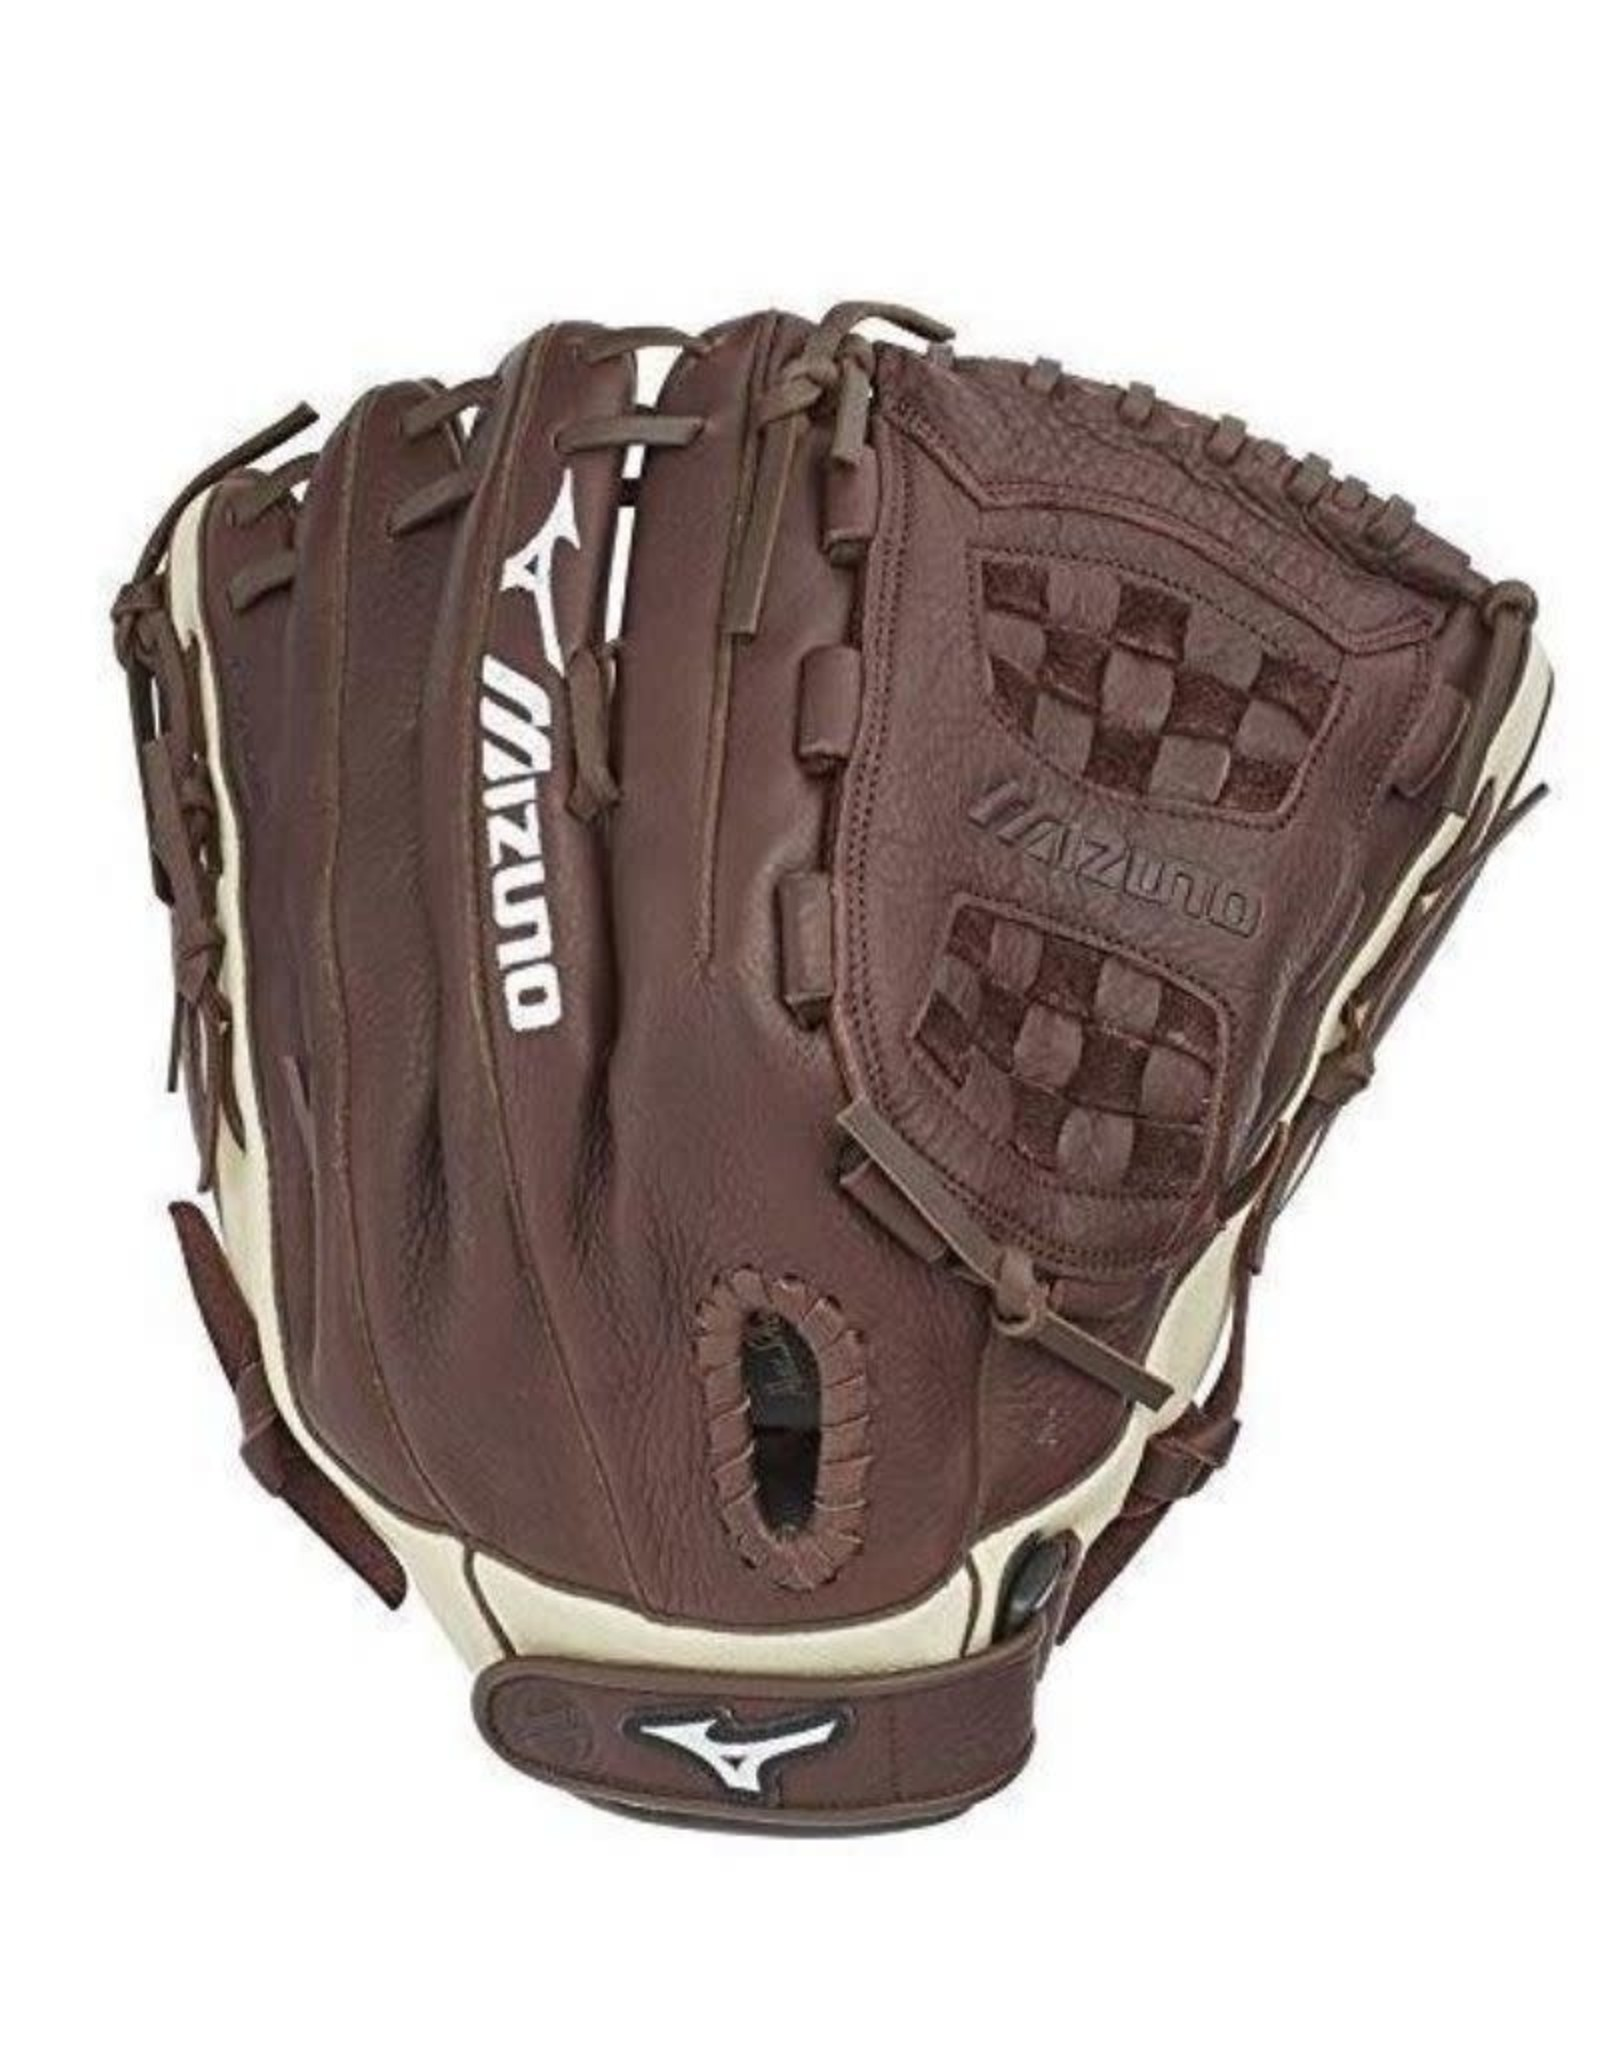 Mizuno Franchise Baseball Glove RH Coffee/Silver 14